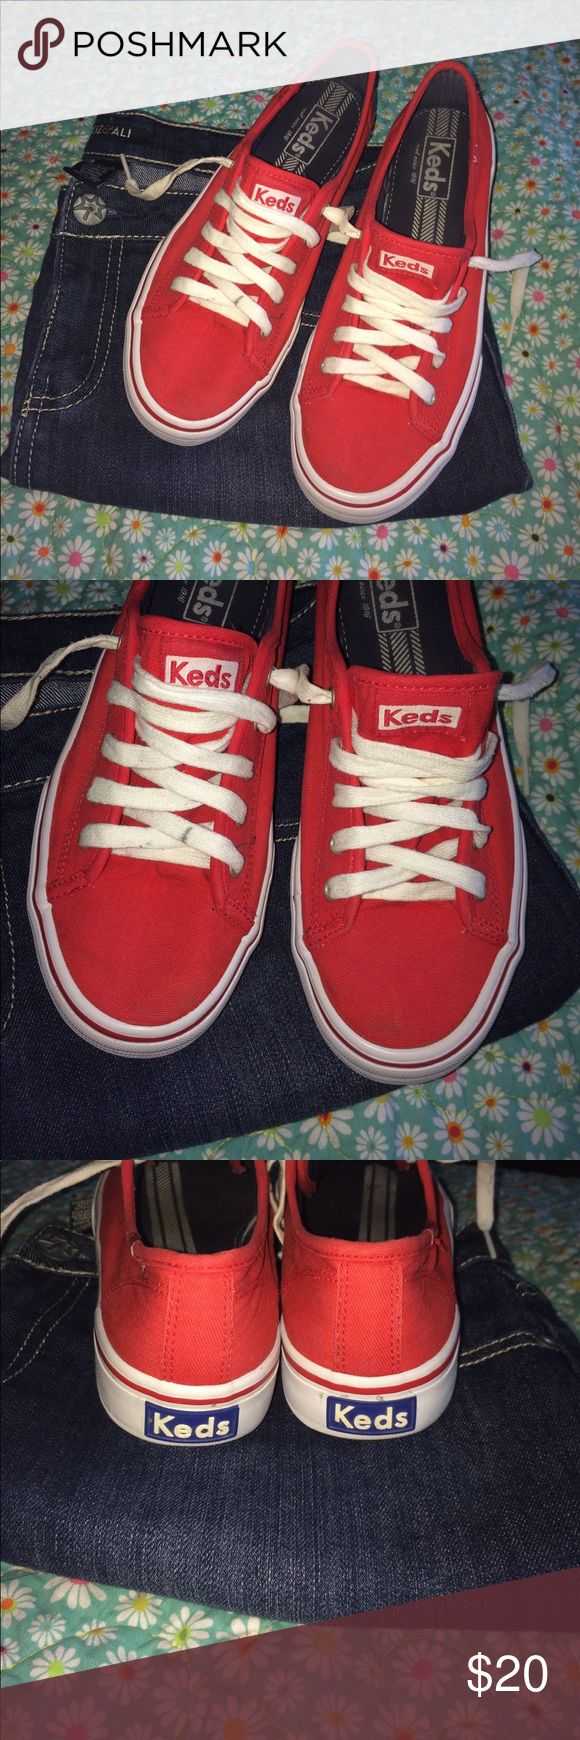 Keds sneakers 👟 Red Keds pre-loved in fabulous condition . Let me know if you have any questions 😁 Keds Shoes Sneakers